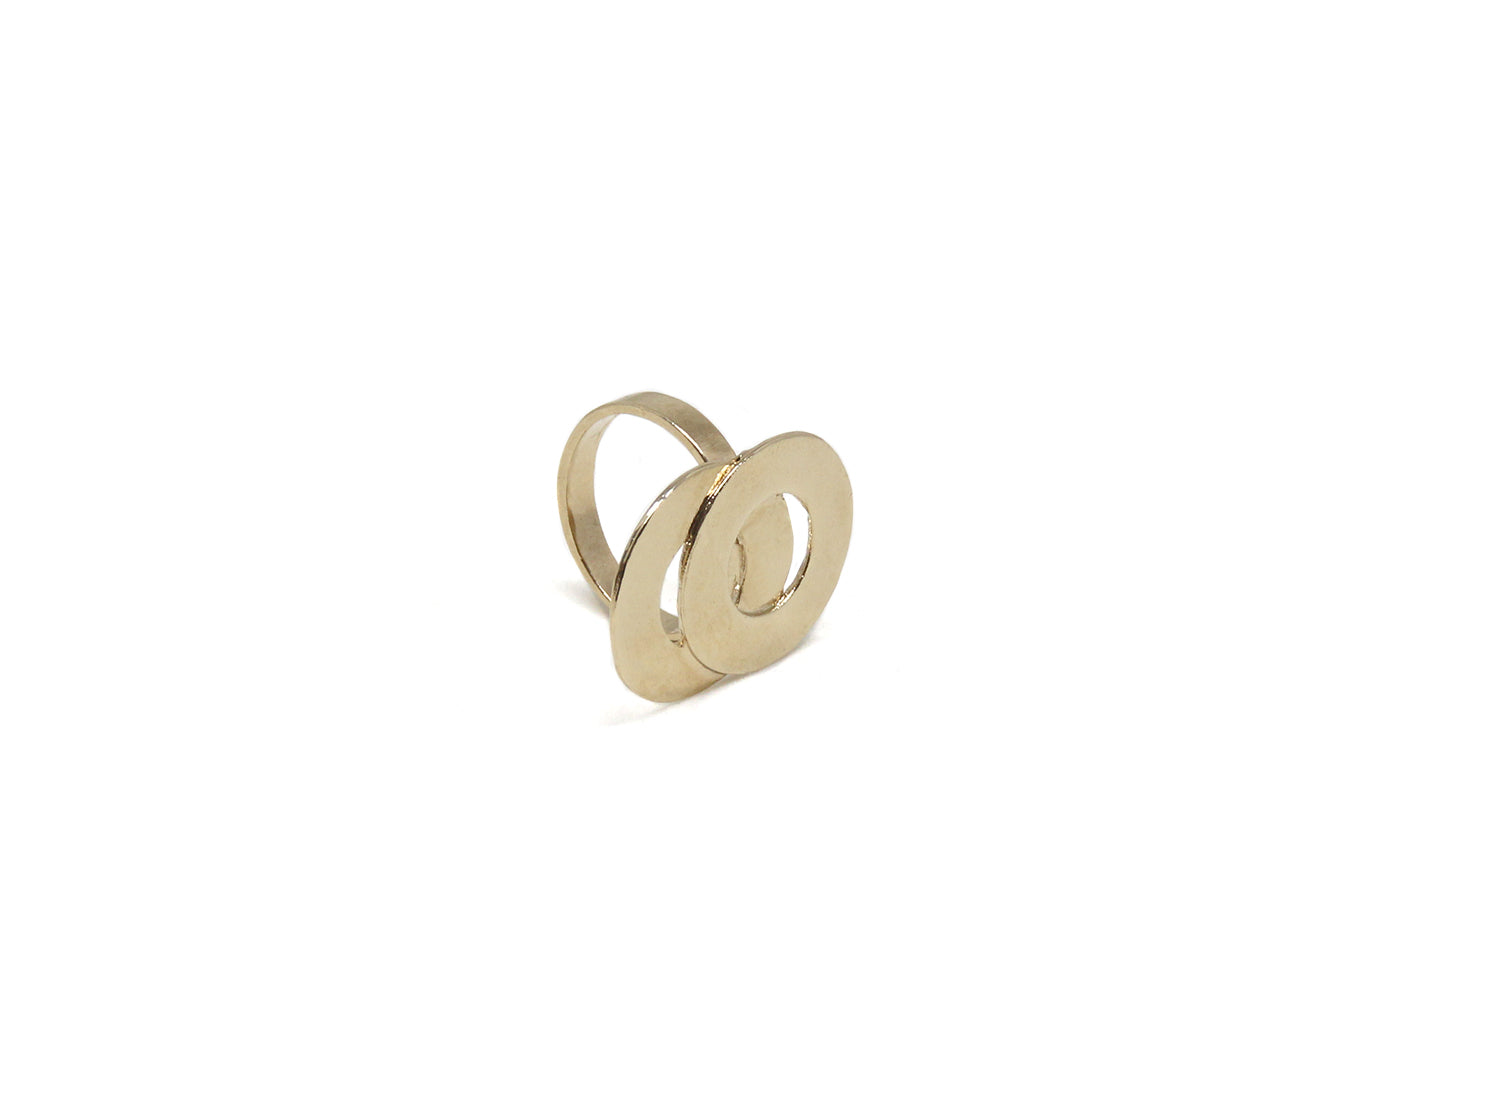 llayers jewelry ring circles loop gold b- bague llayers Loop minimale or cercles entrelacés